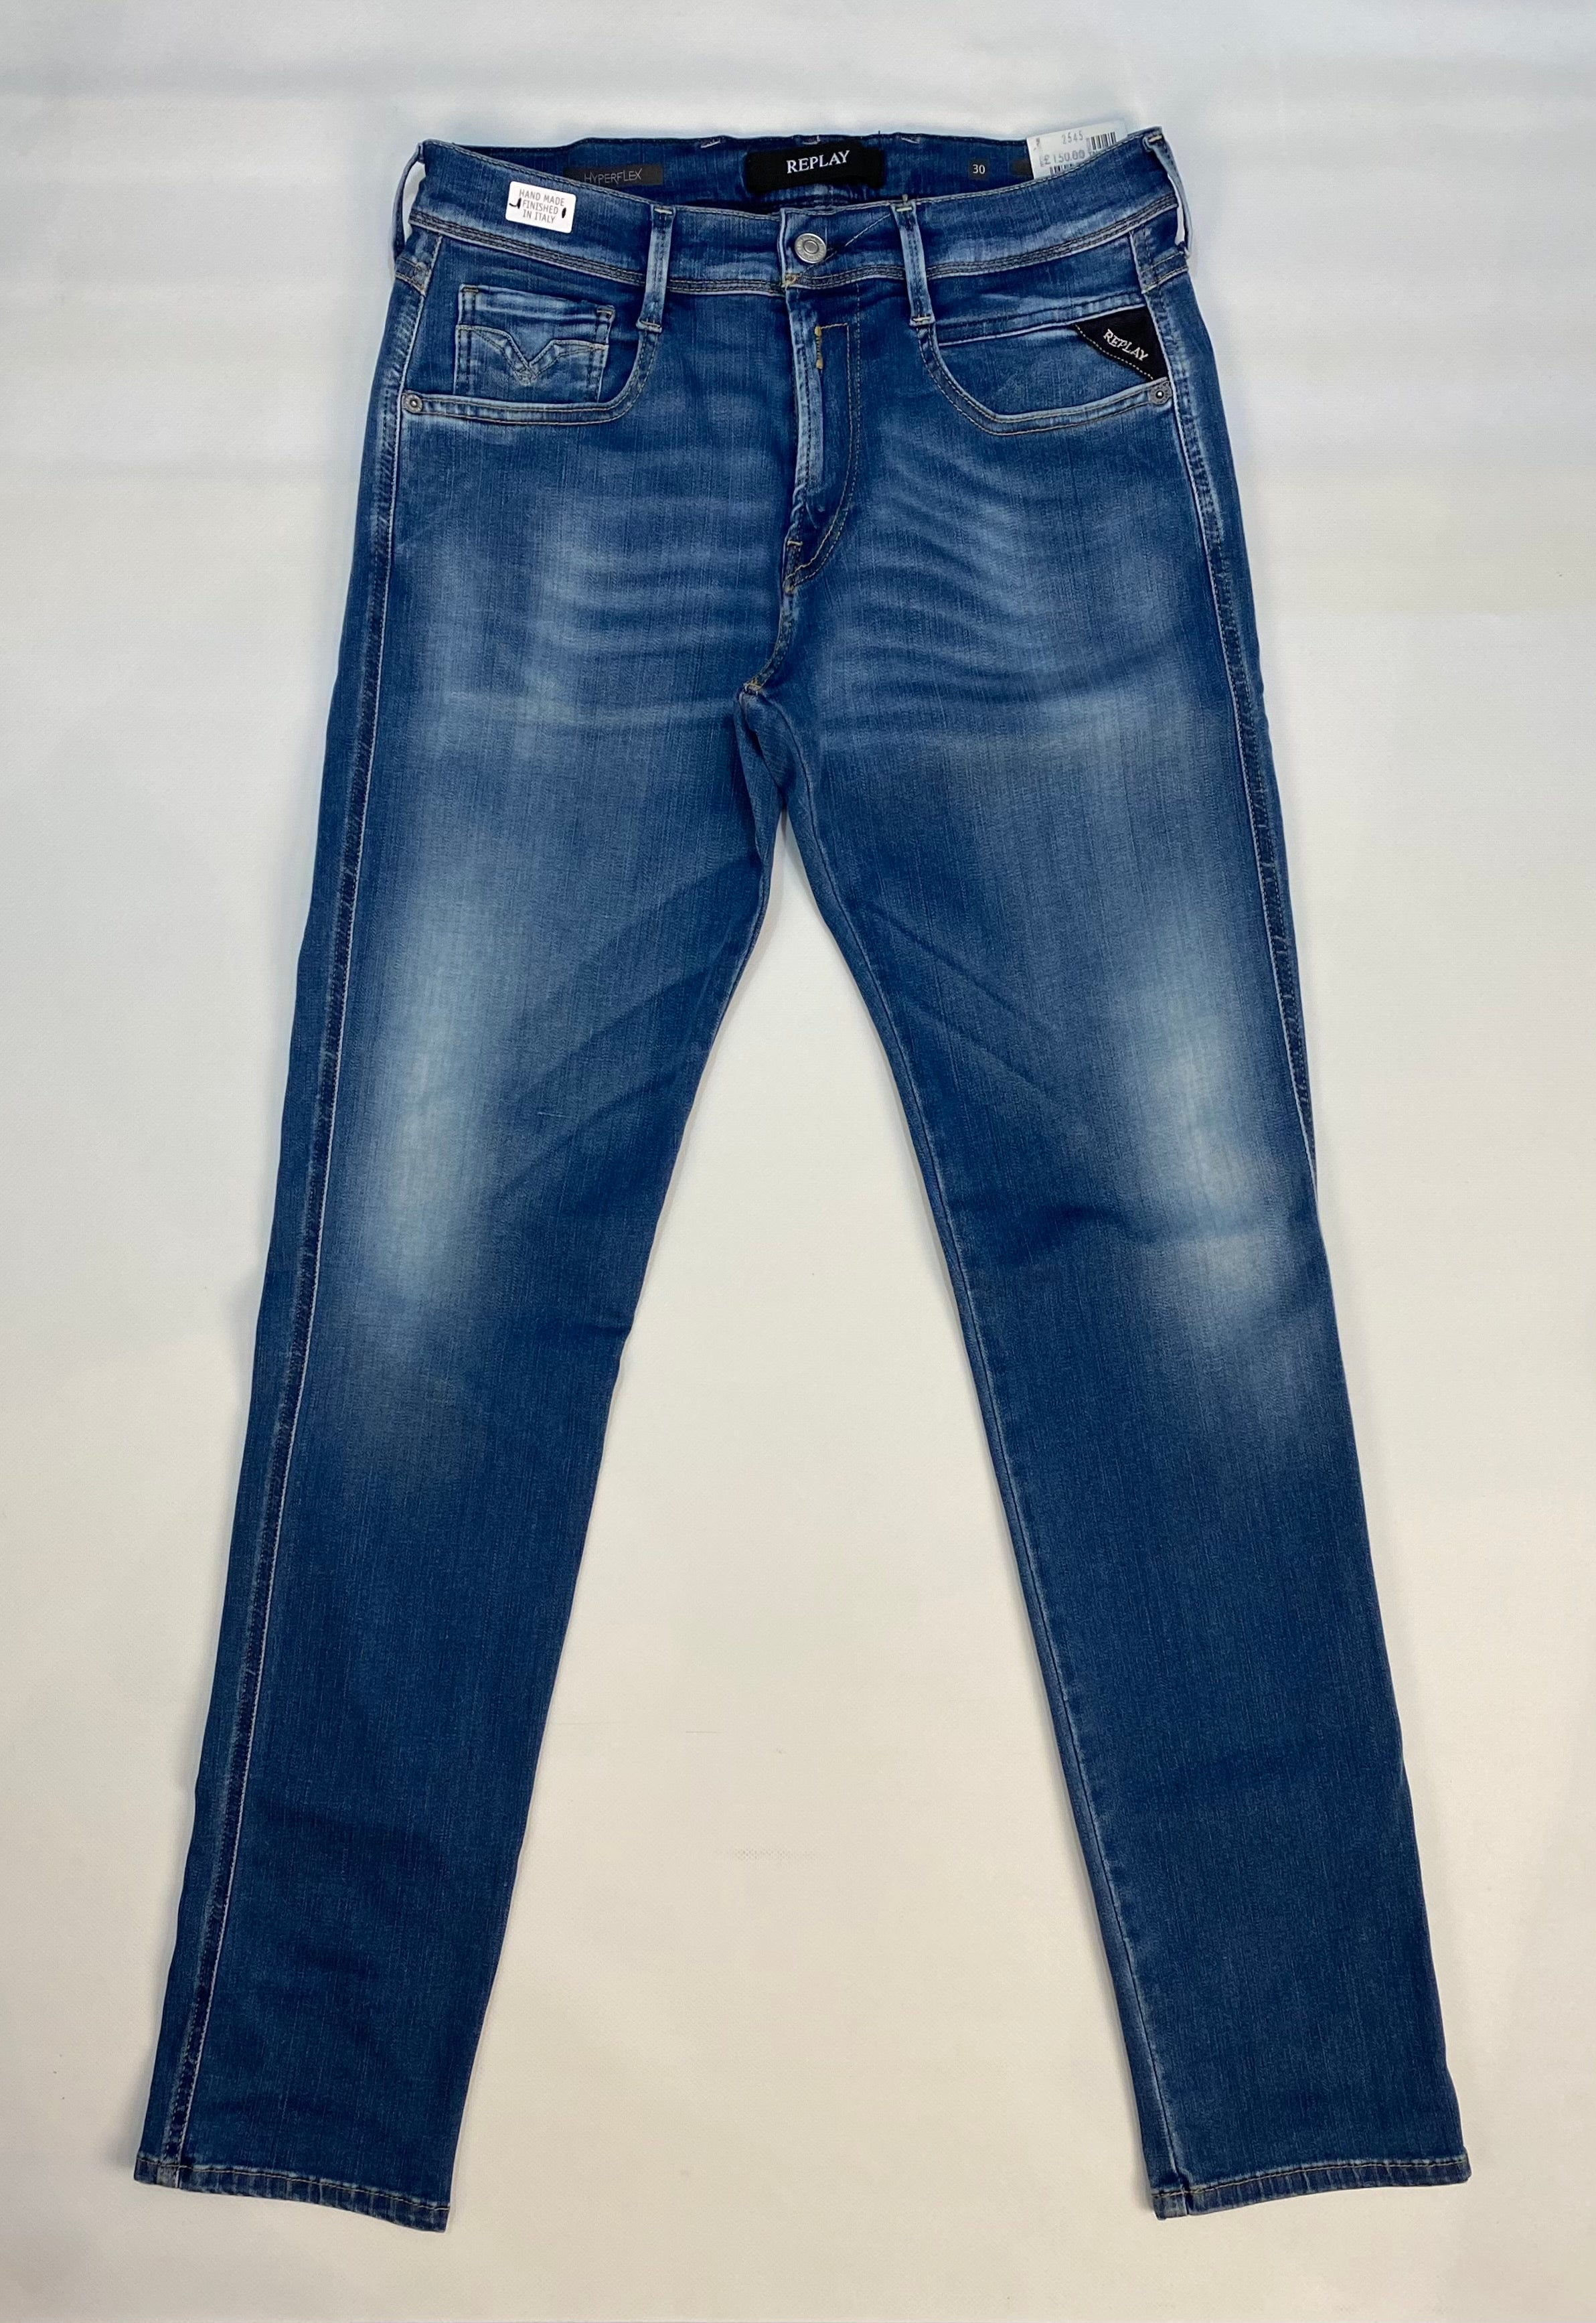 "Replay ""HYPERFLEX"" Grover BIO Edition Slim Stretch Jeans Lightwash"